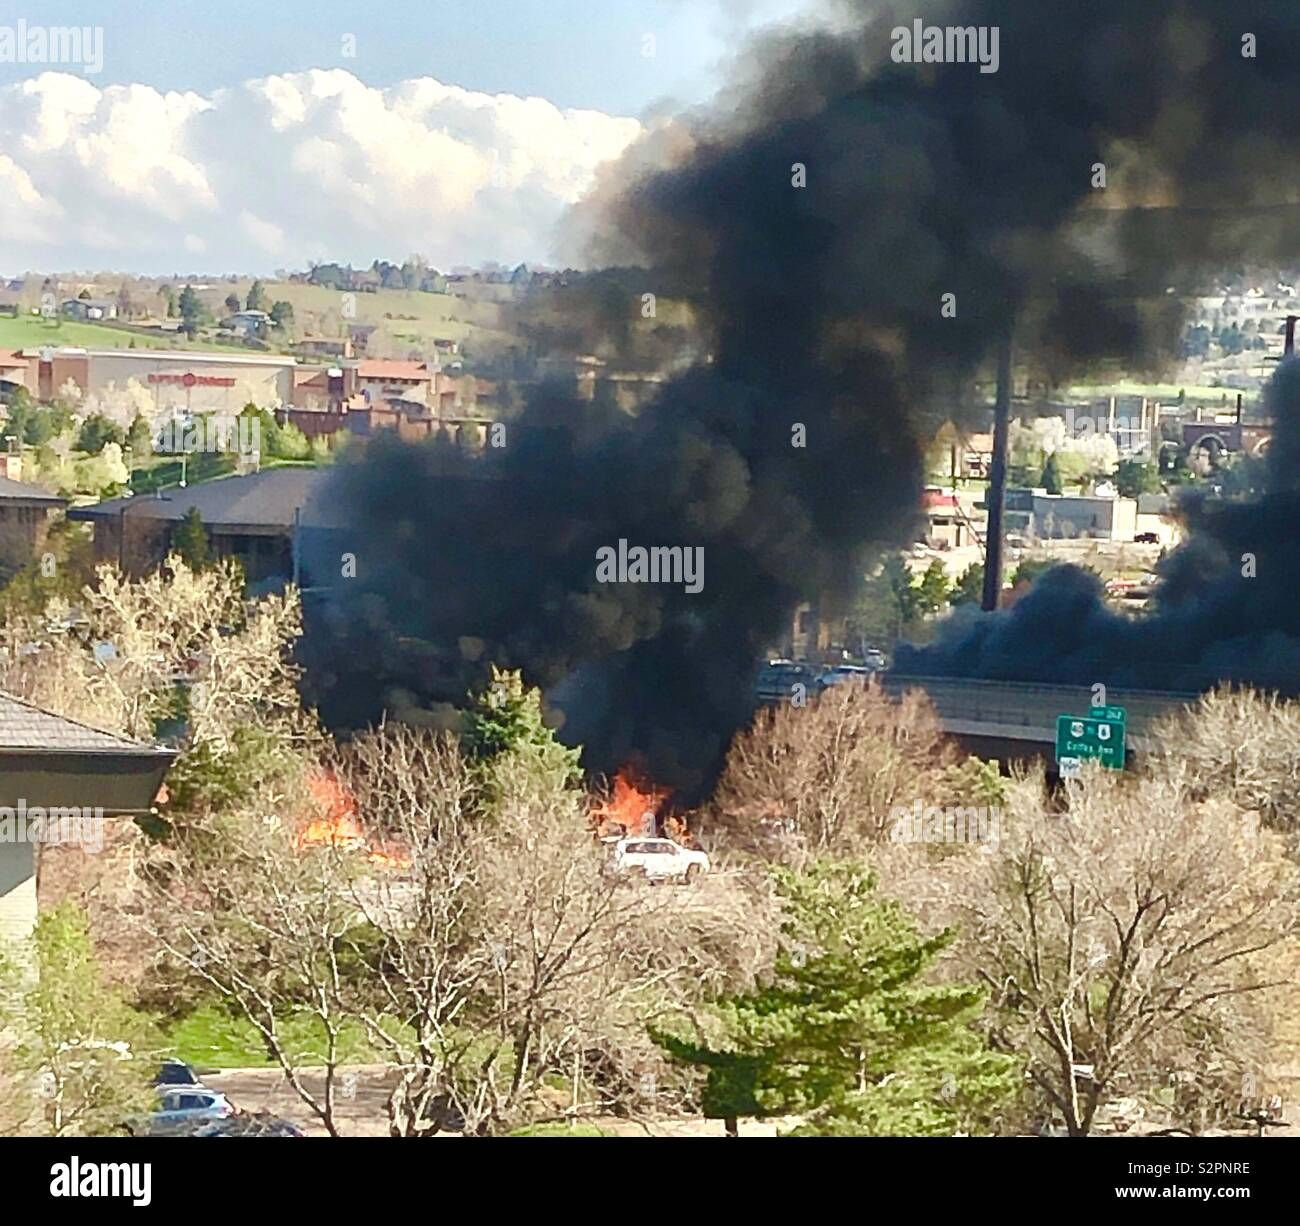 Raging fire. on Highway, Lakewood, Colorado April 25 2019 - Stock Image